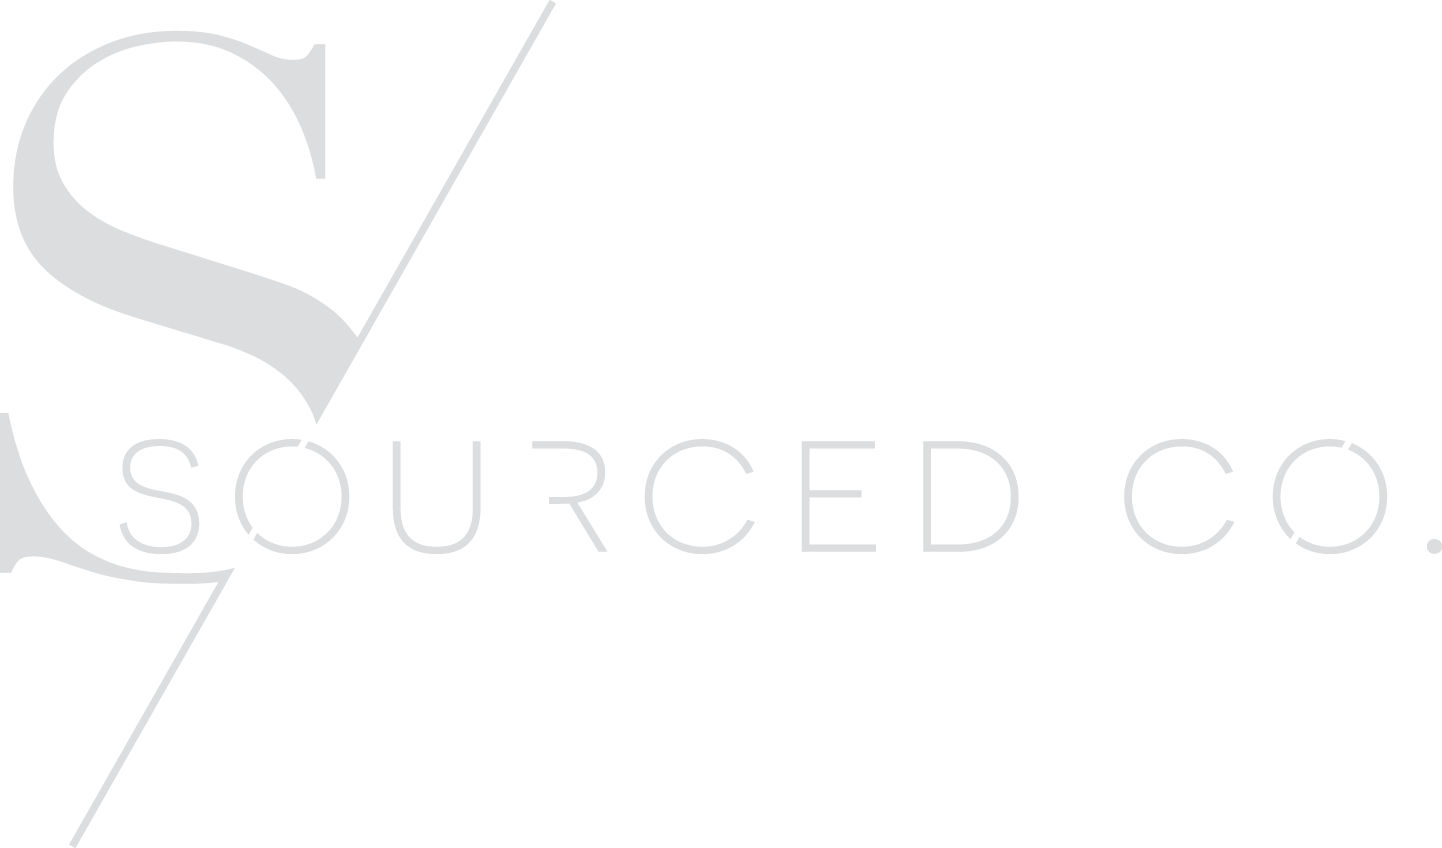 sourced-logo.png